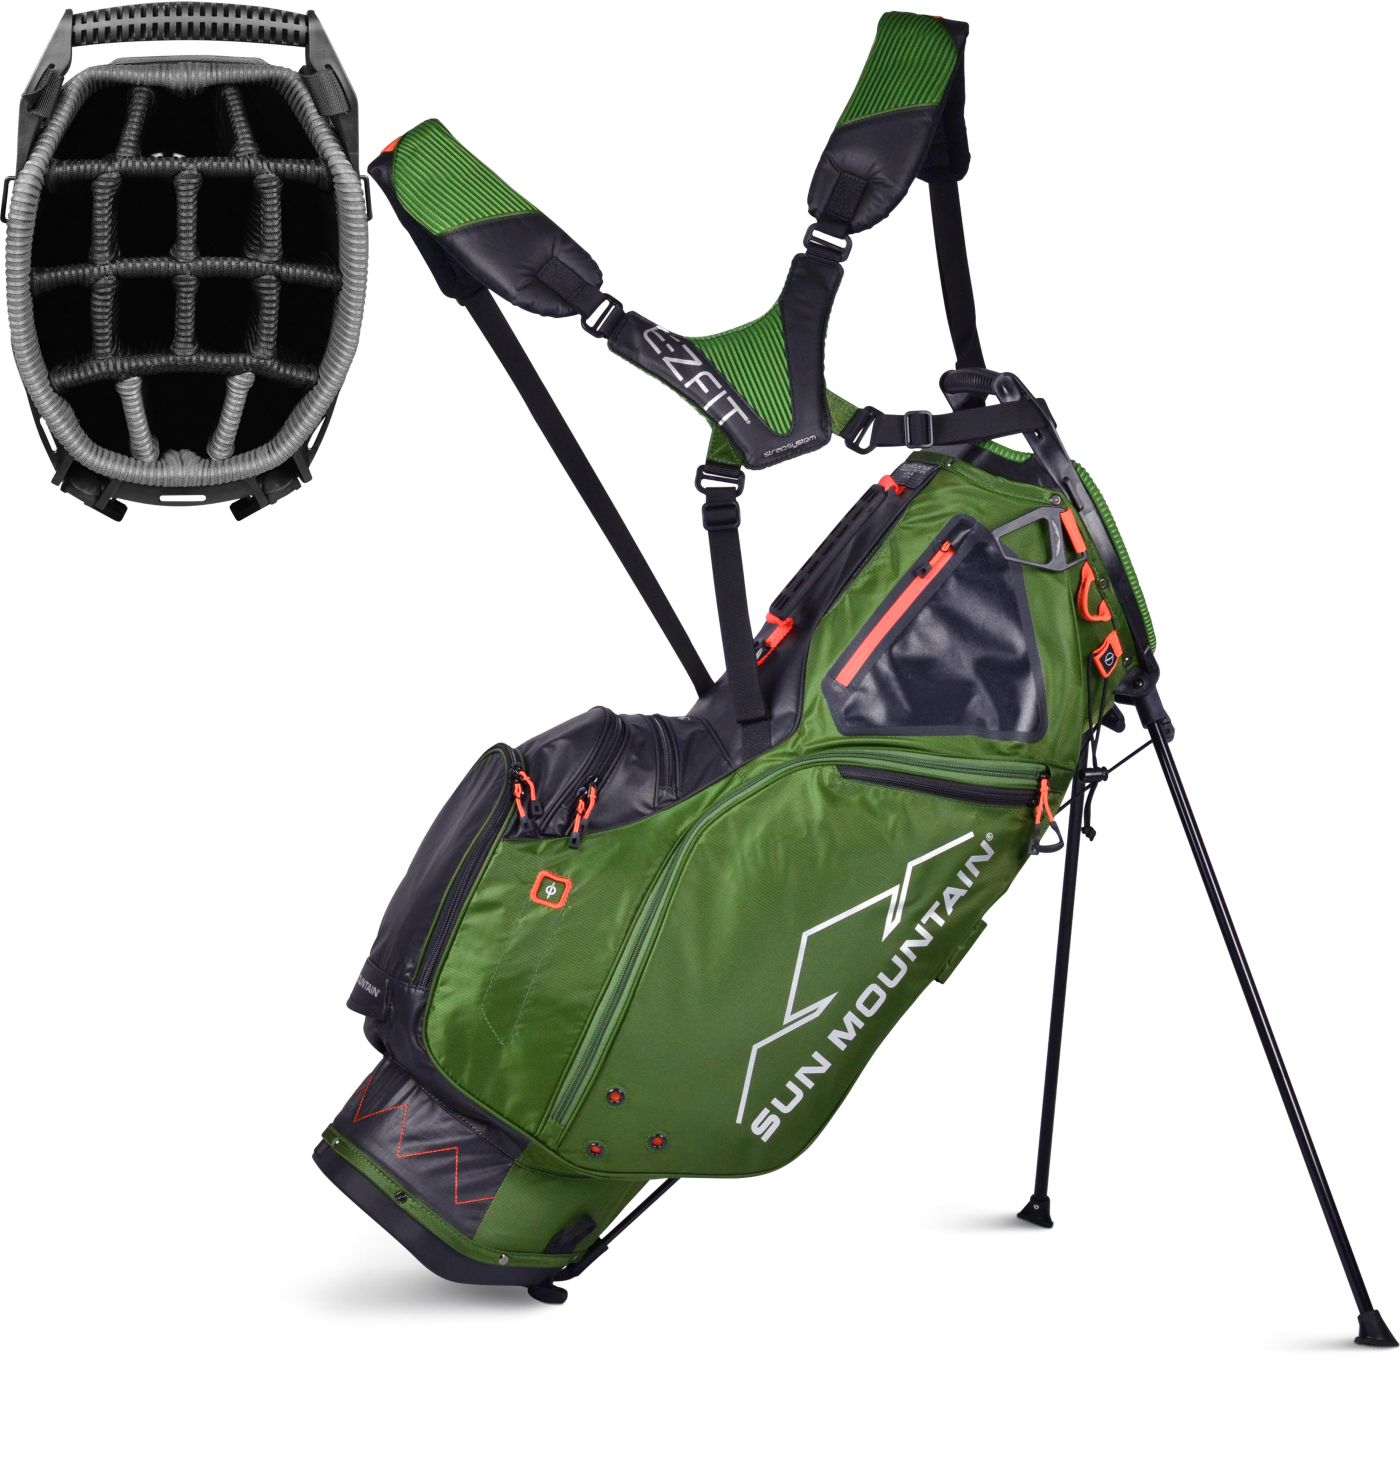 Sun Mountain 2019 4.5 LS 14-Way Stand Golf Bag